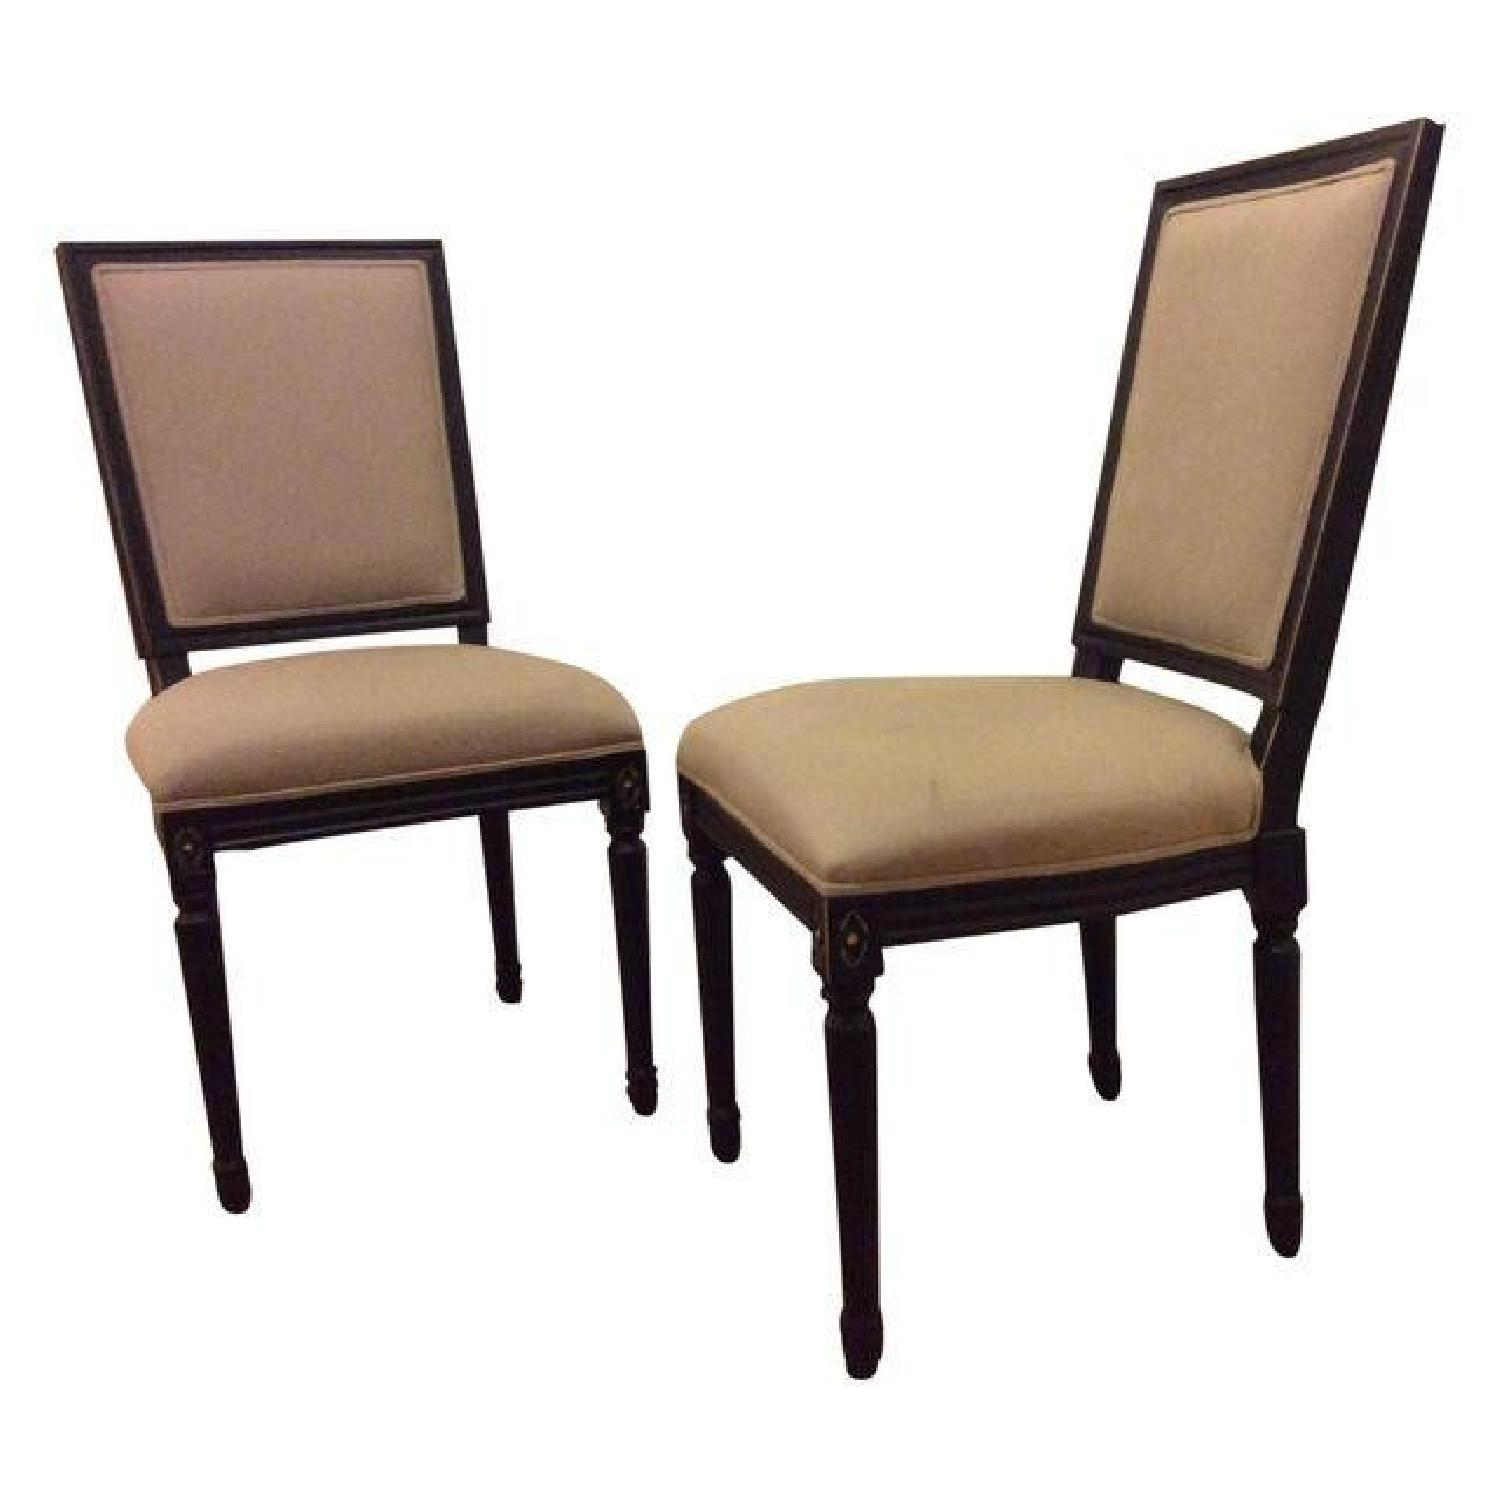 Horchow Wood Upholstered Dining Chairs - Pair - image-0